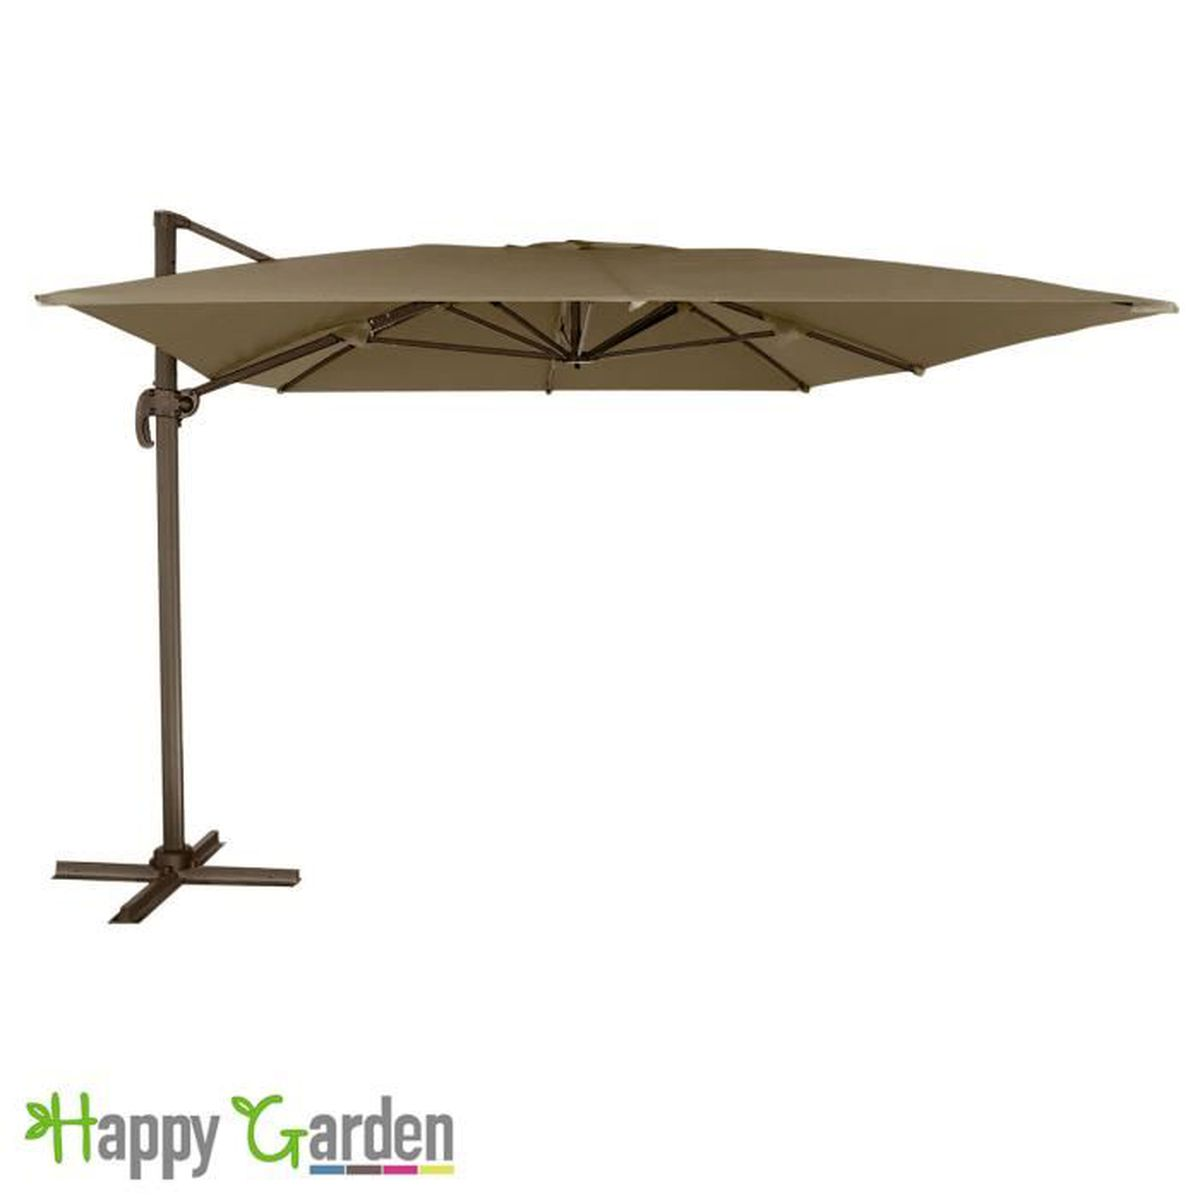 Parasol d port molokai rectangulaire 3x4m taupe m t marron achat vente - Parasol deporte rectangulaire inclinable ...